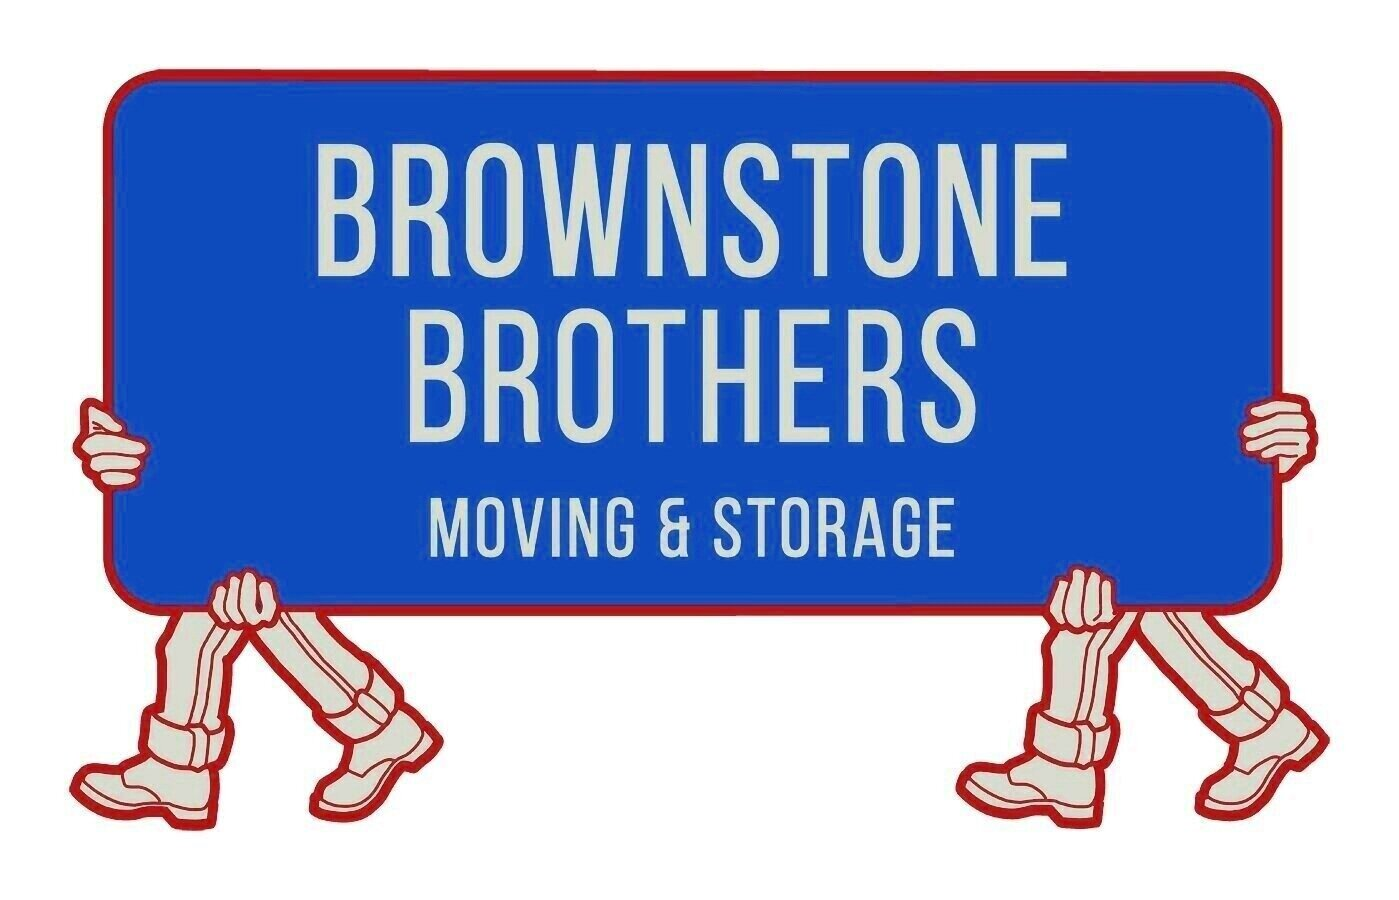 Brownstone Brothers Moving & Storage